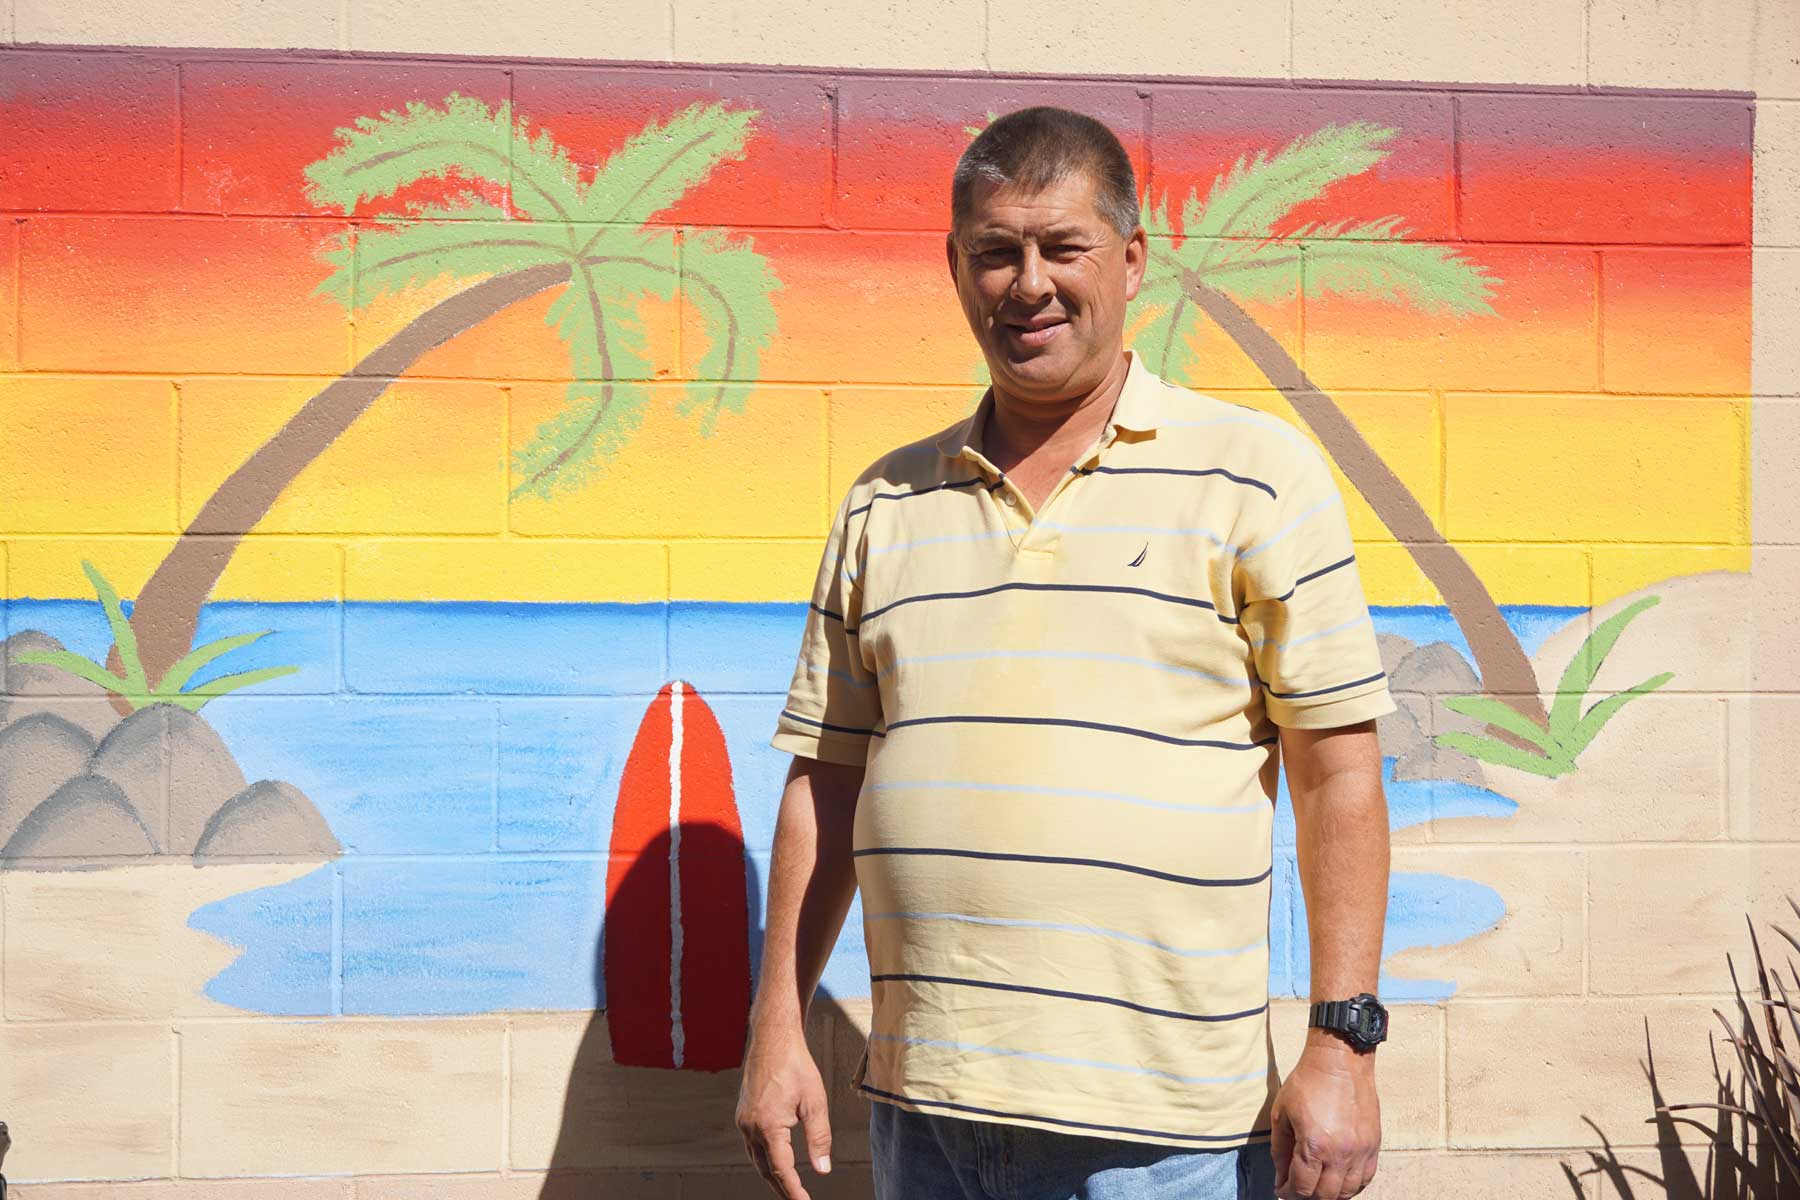 A man who is a suportive housing resident of the Luhman Center for Supportive Living adult residential care facility stands in front of a wall mural depicting a beach sunset, including sand, water, two palm trees and a red surfboard.